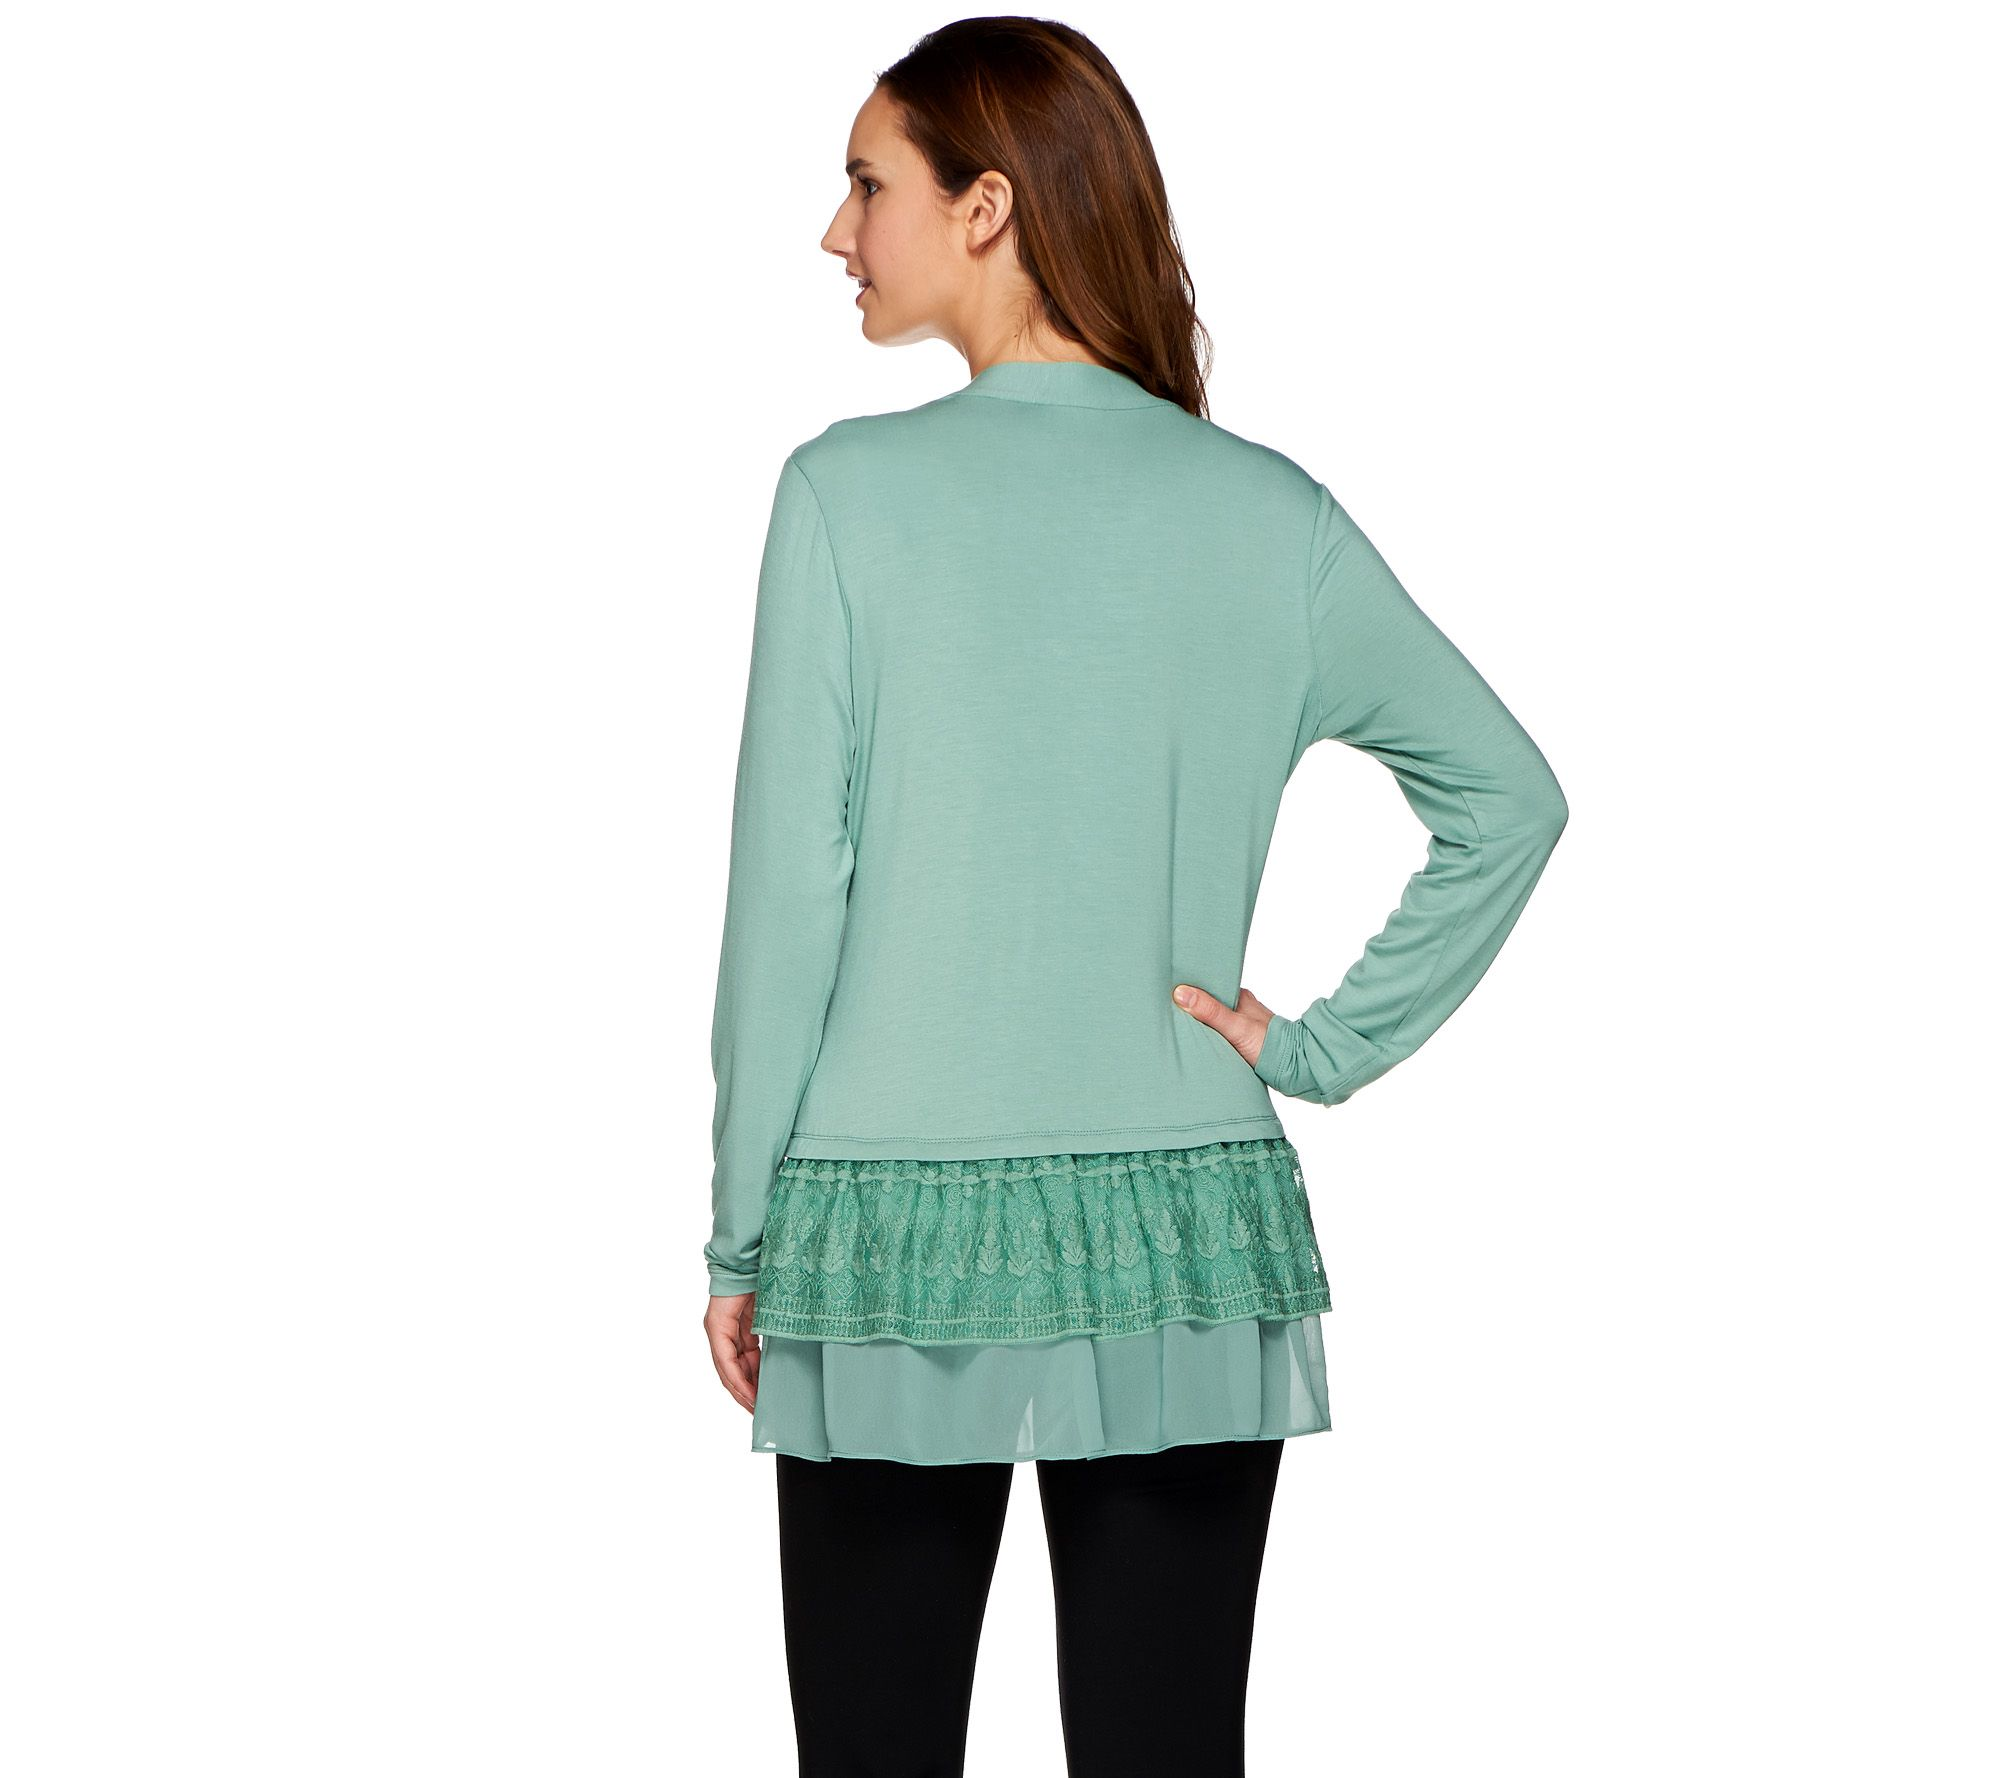 aed2176aadaf6 LOGO by Lori Goldstein Knit Cardigan with Chiffon & Embroidery - Page 1 —  QVC.com